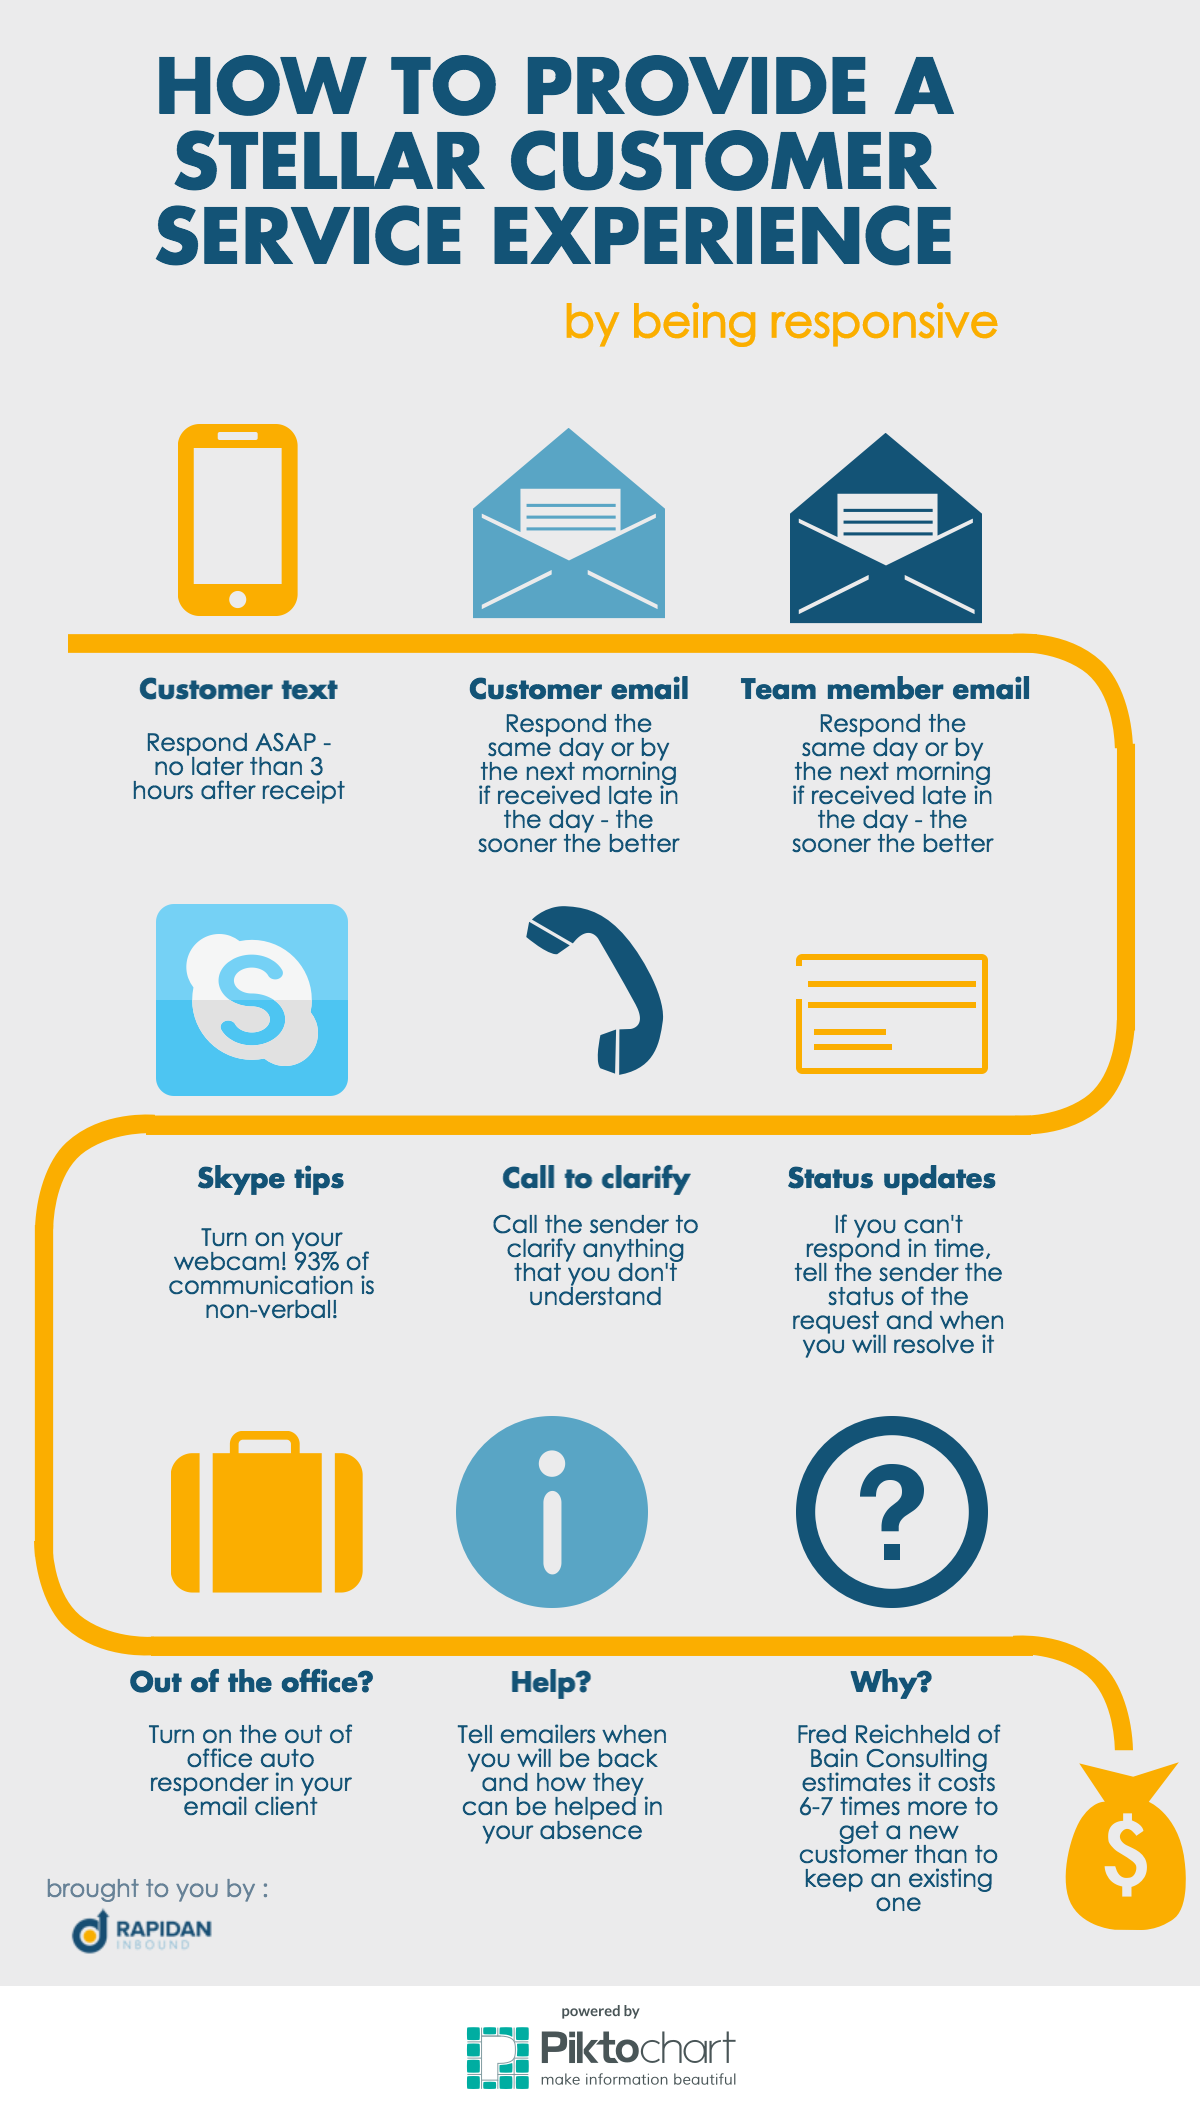 How To Provide A Stellar Customer Service Experience